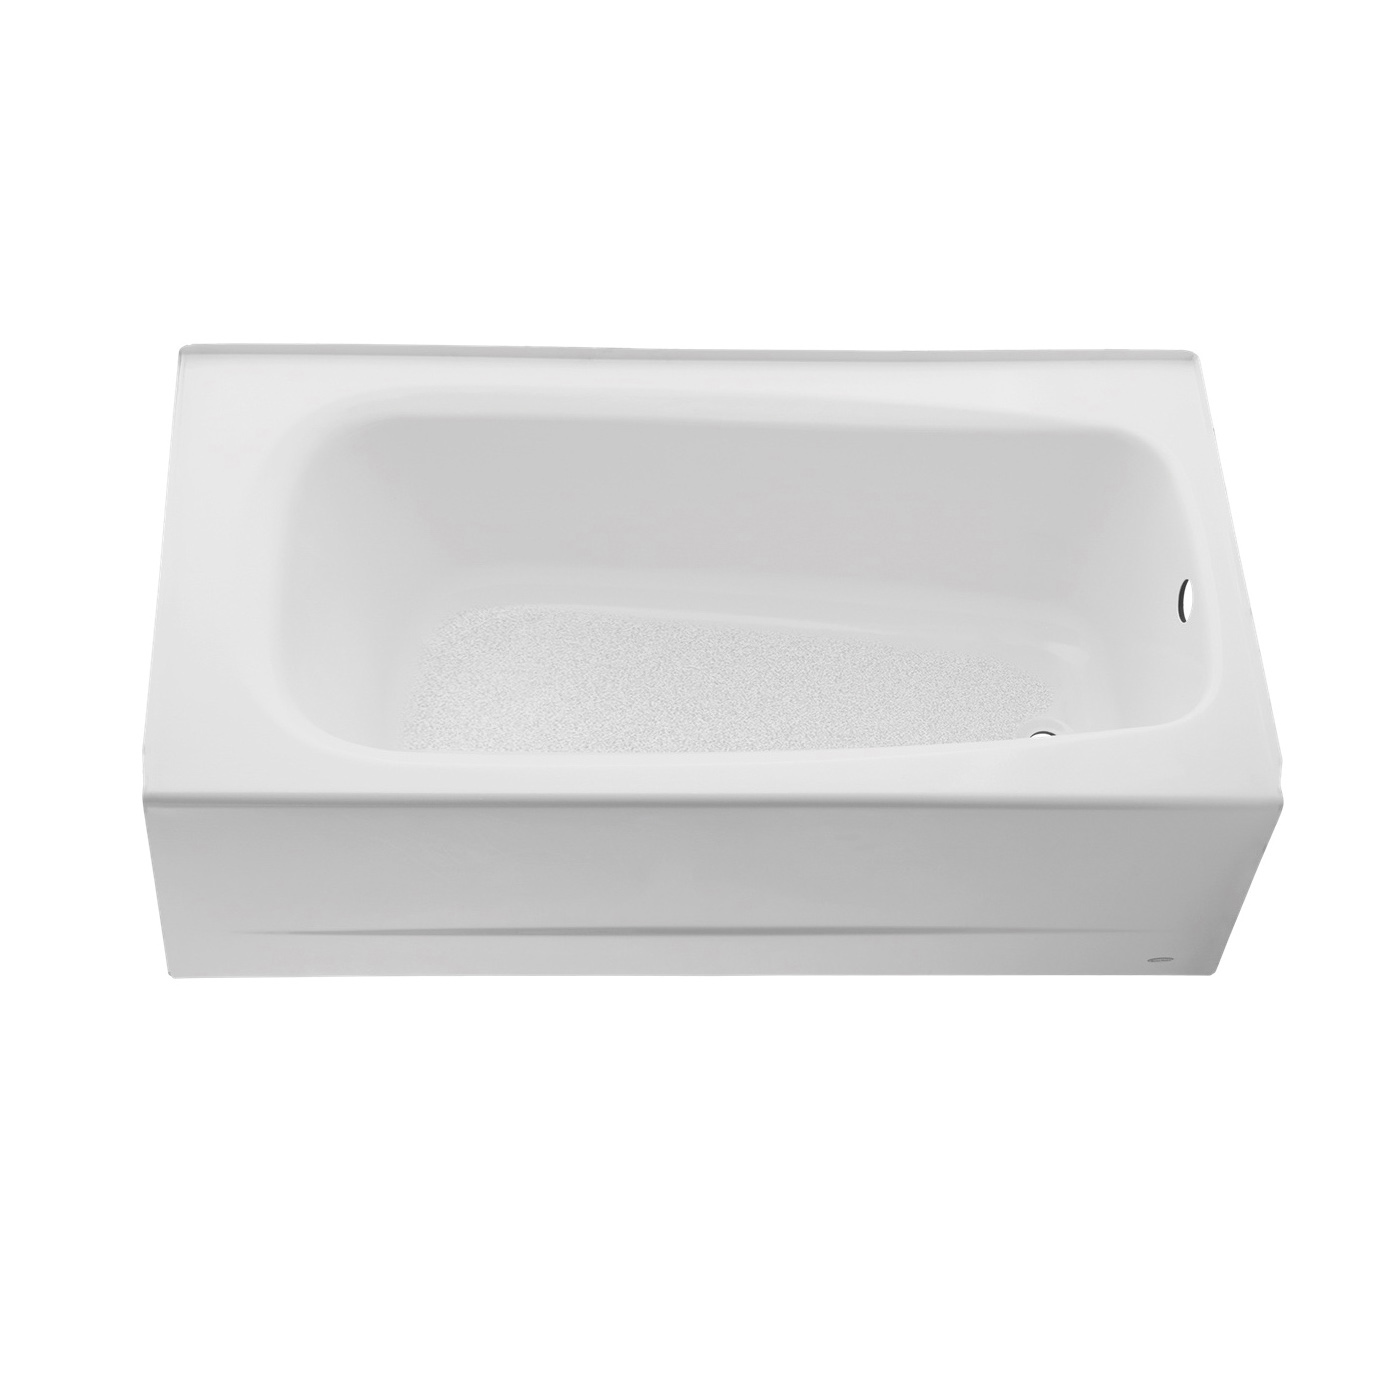 American Standard 2460.002.020 Cambridge™ Bathtub, Soaking, Rectangular, 60 in L x 32 in W, Left Hand Drain, White, Domestic